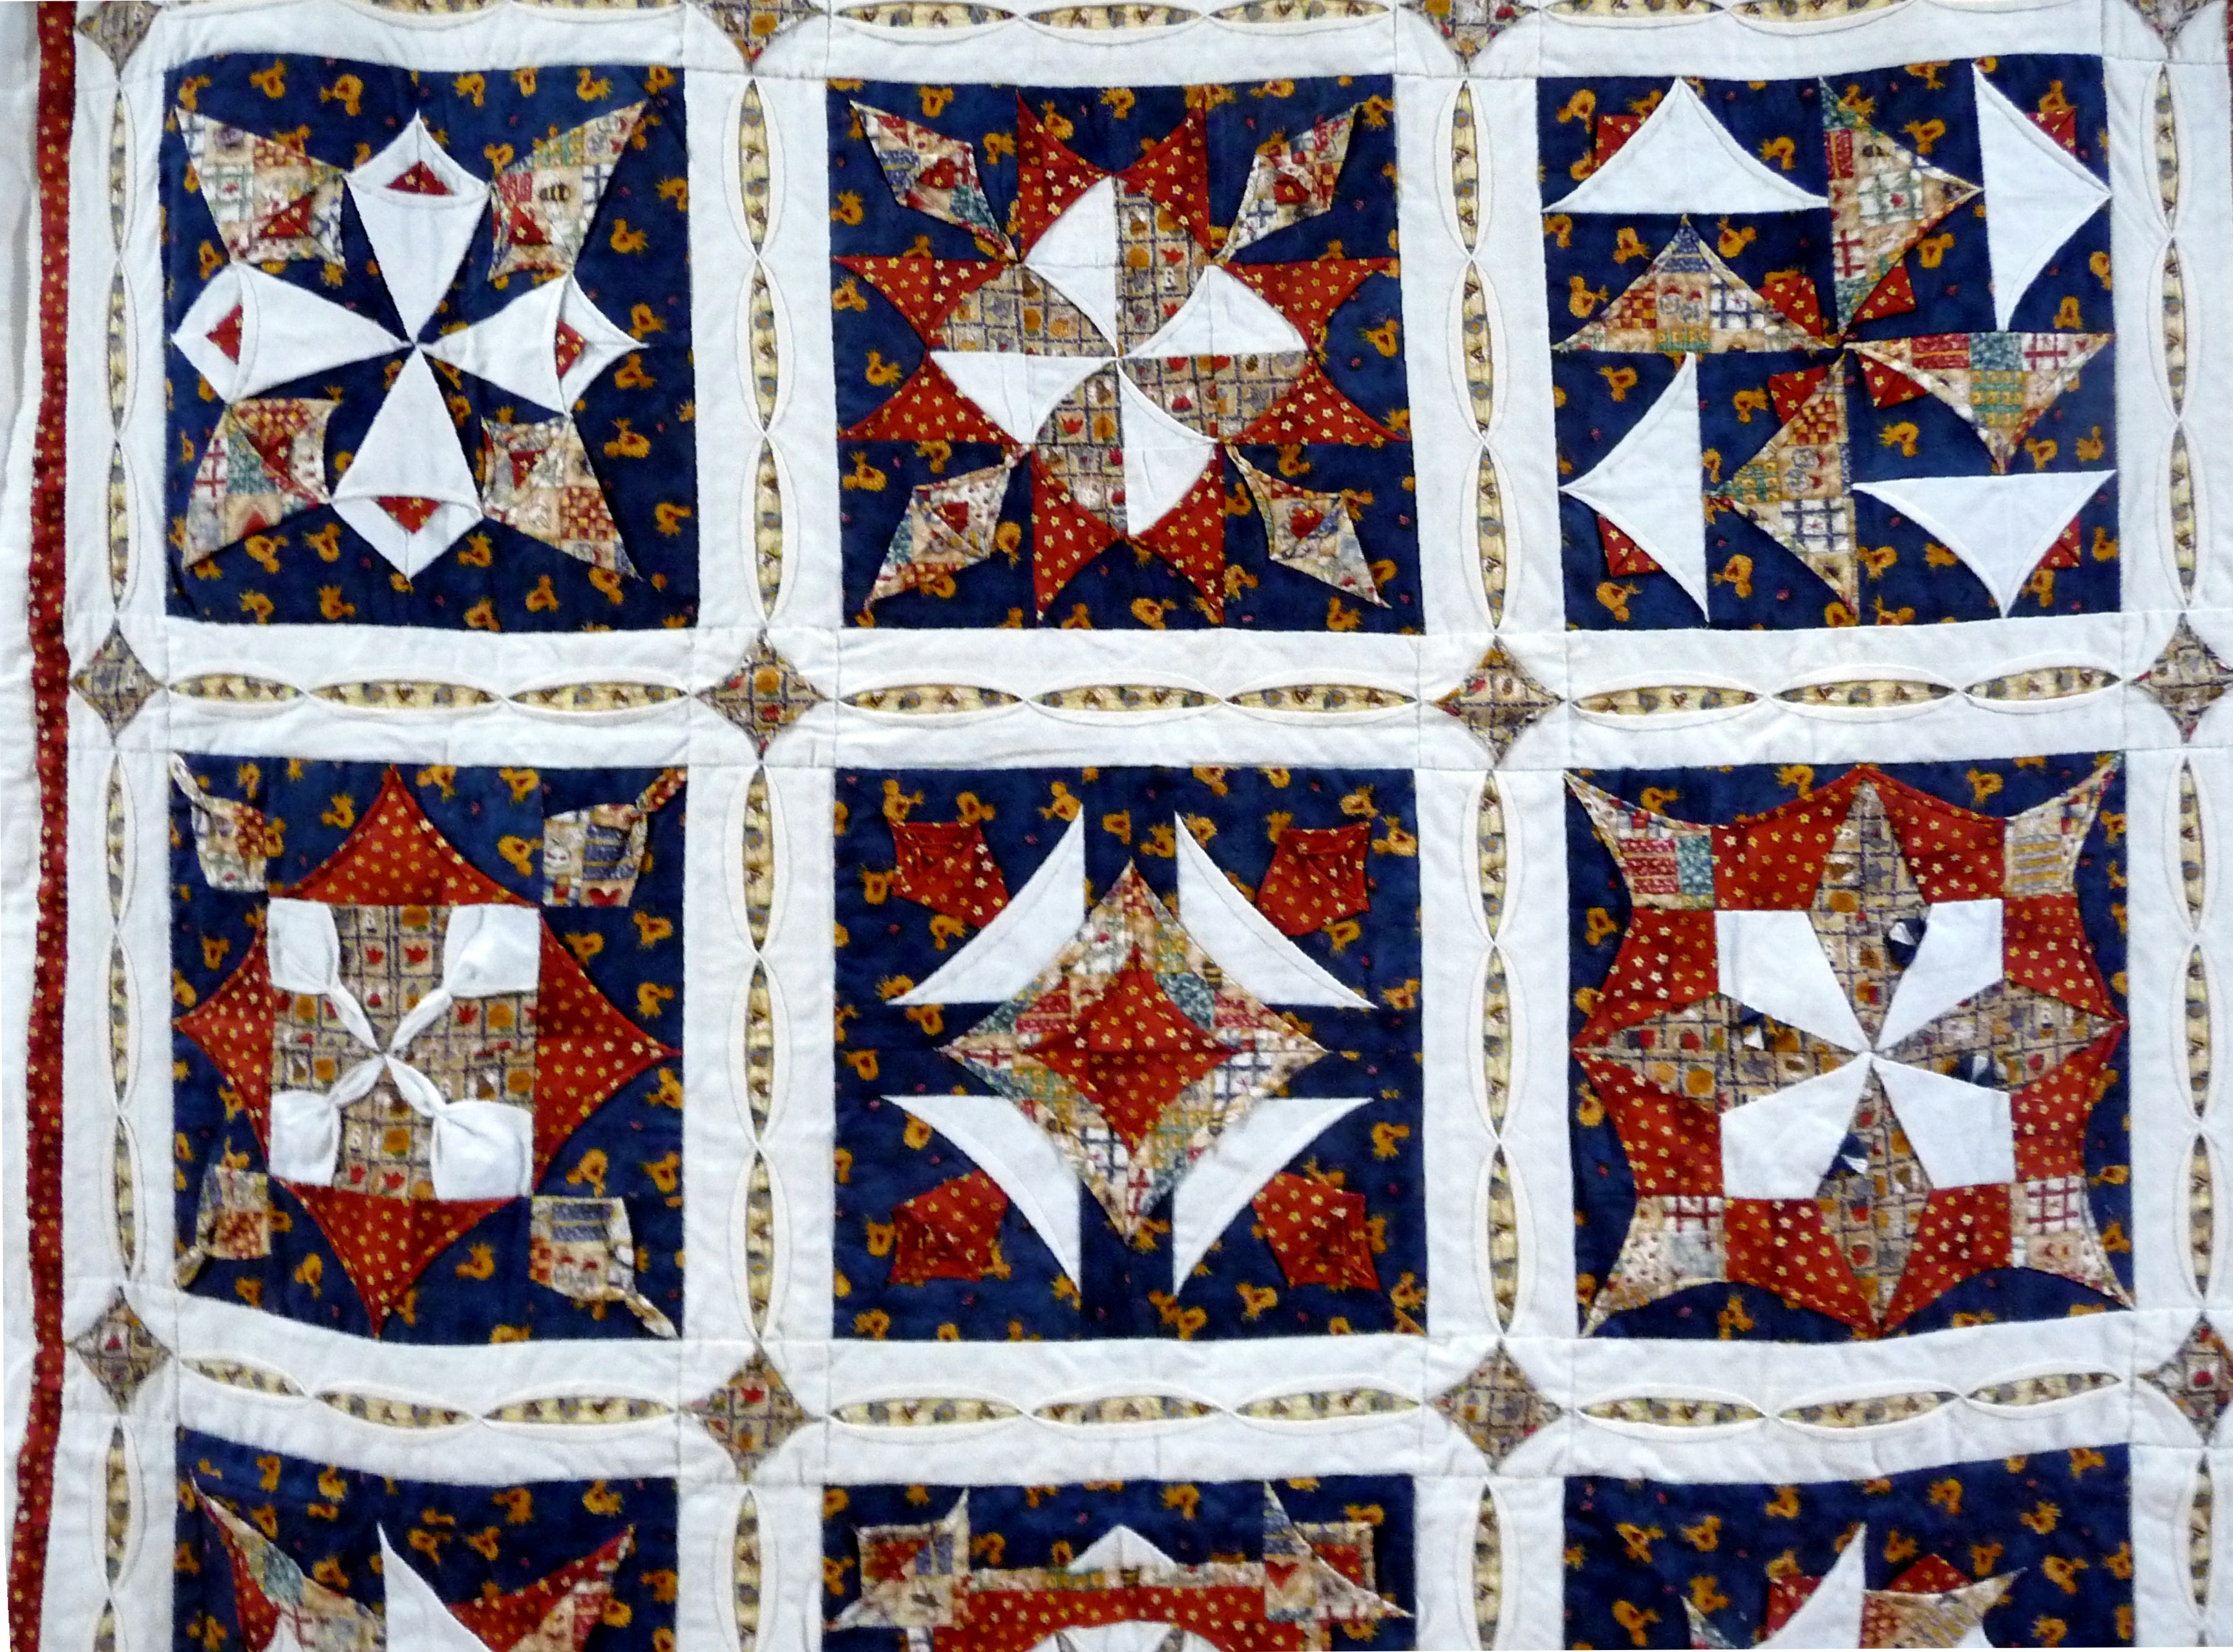 TUCKS & TEXTURES by Jenny Sheen, hand pieced quilt, machine quilted